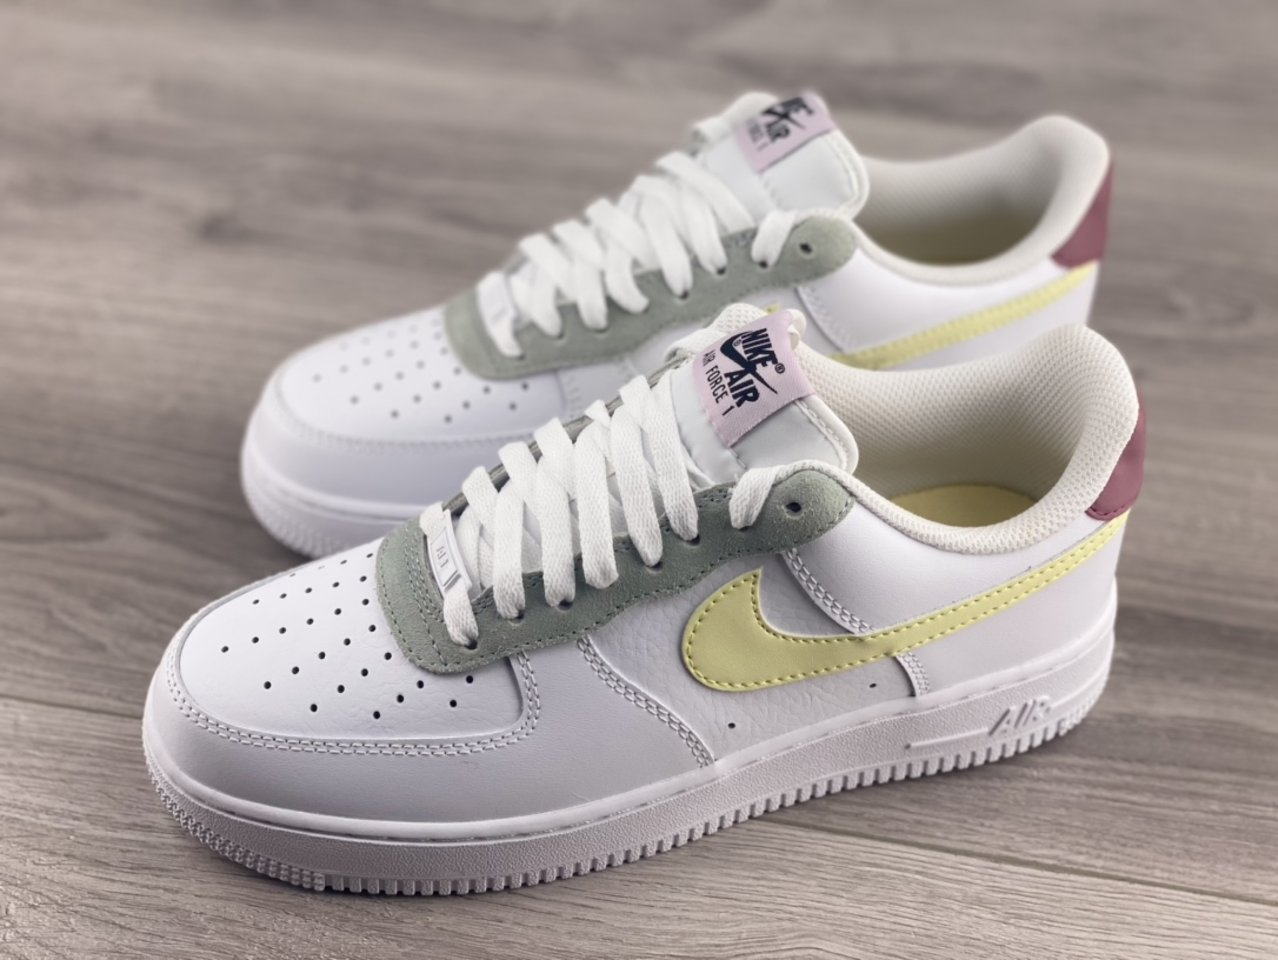 Cheap Nike Air Force 1 Low Muted Pastels White Pink DN4930-100 overall